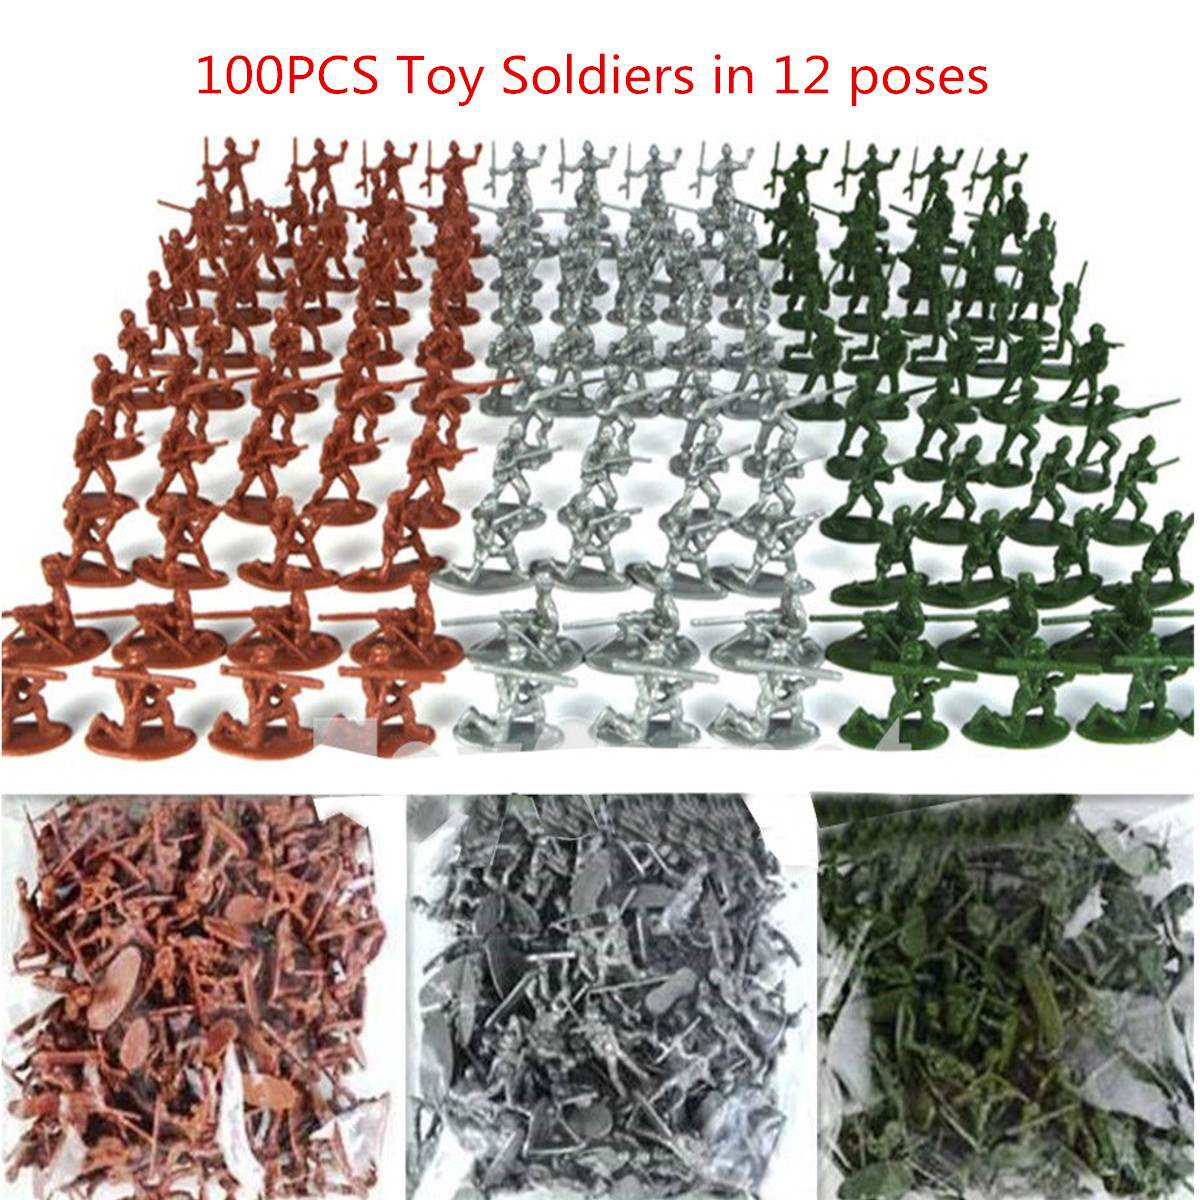 100pcsset Military Plastic Toy Soldiers Army Men Figures 12 Poses Gift Toy Model Action Figure Toys For Children Boys